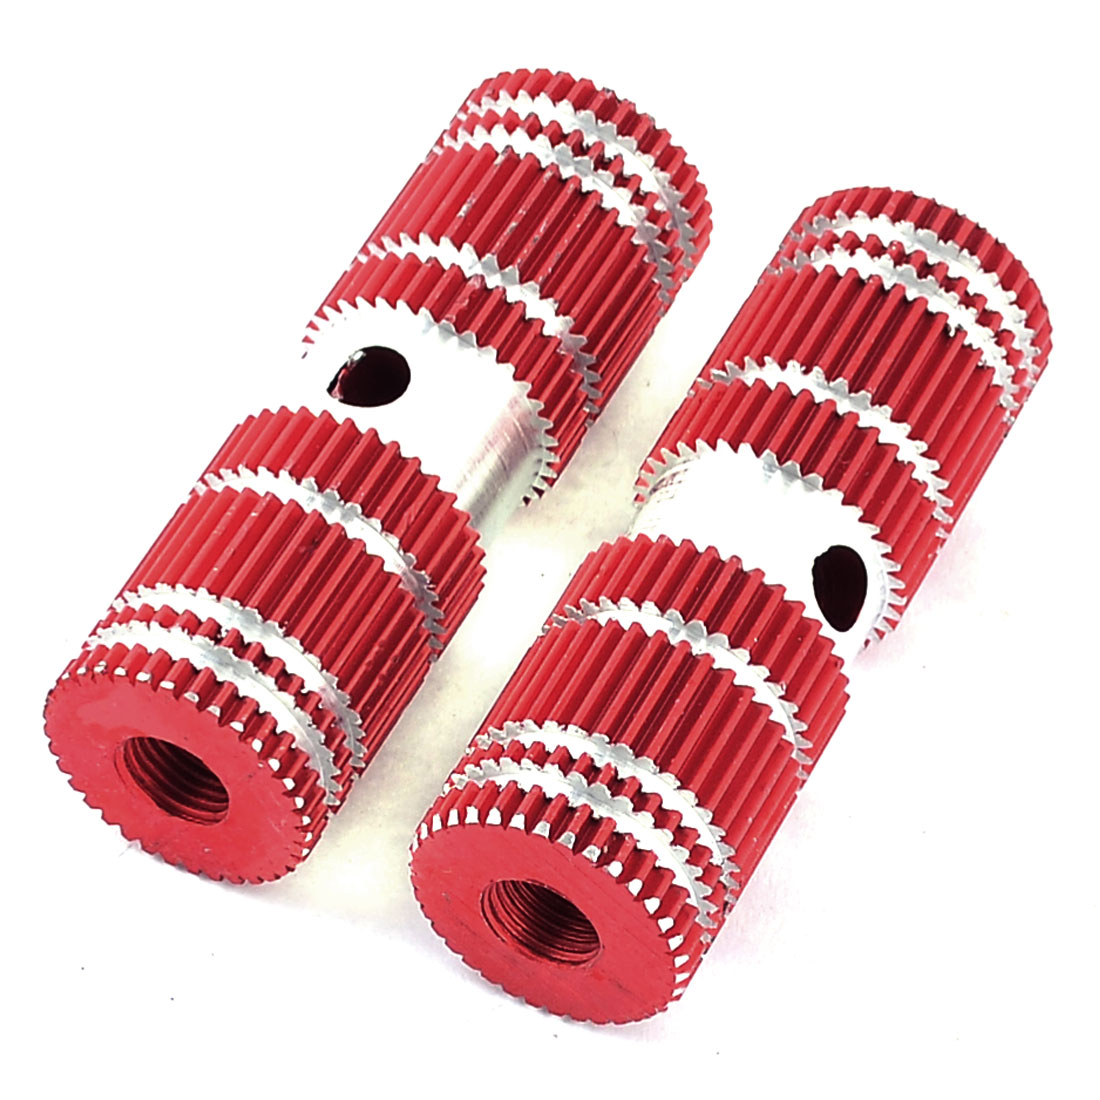 2 Pcs Red Cylindrical Aluminum Bicycle Bike Rear Axle Foot Pegs Pedal